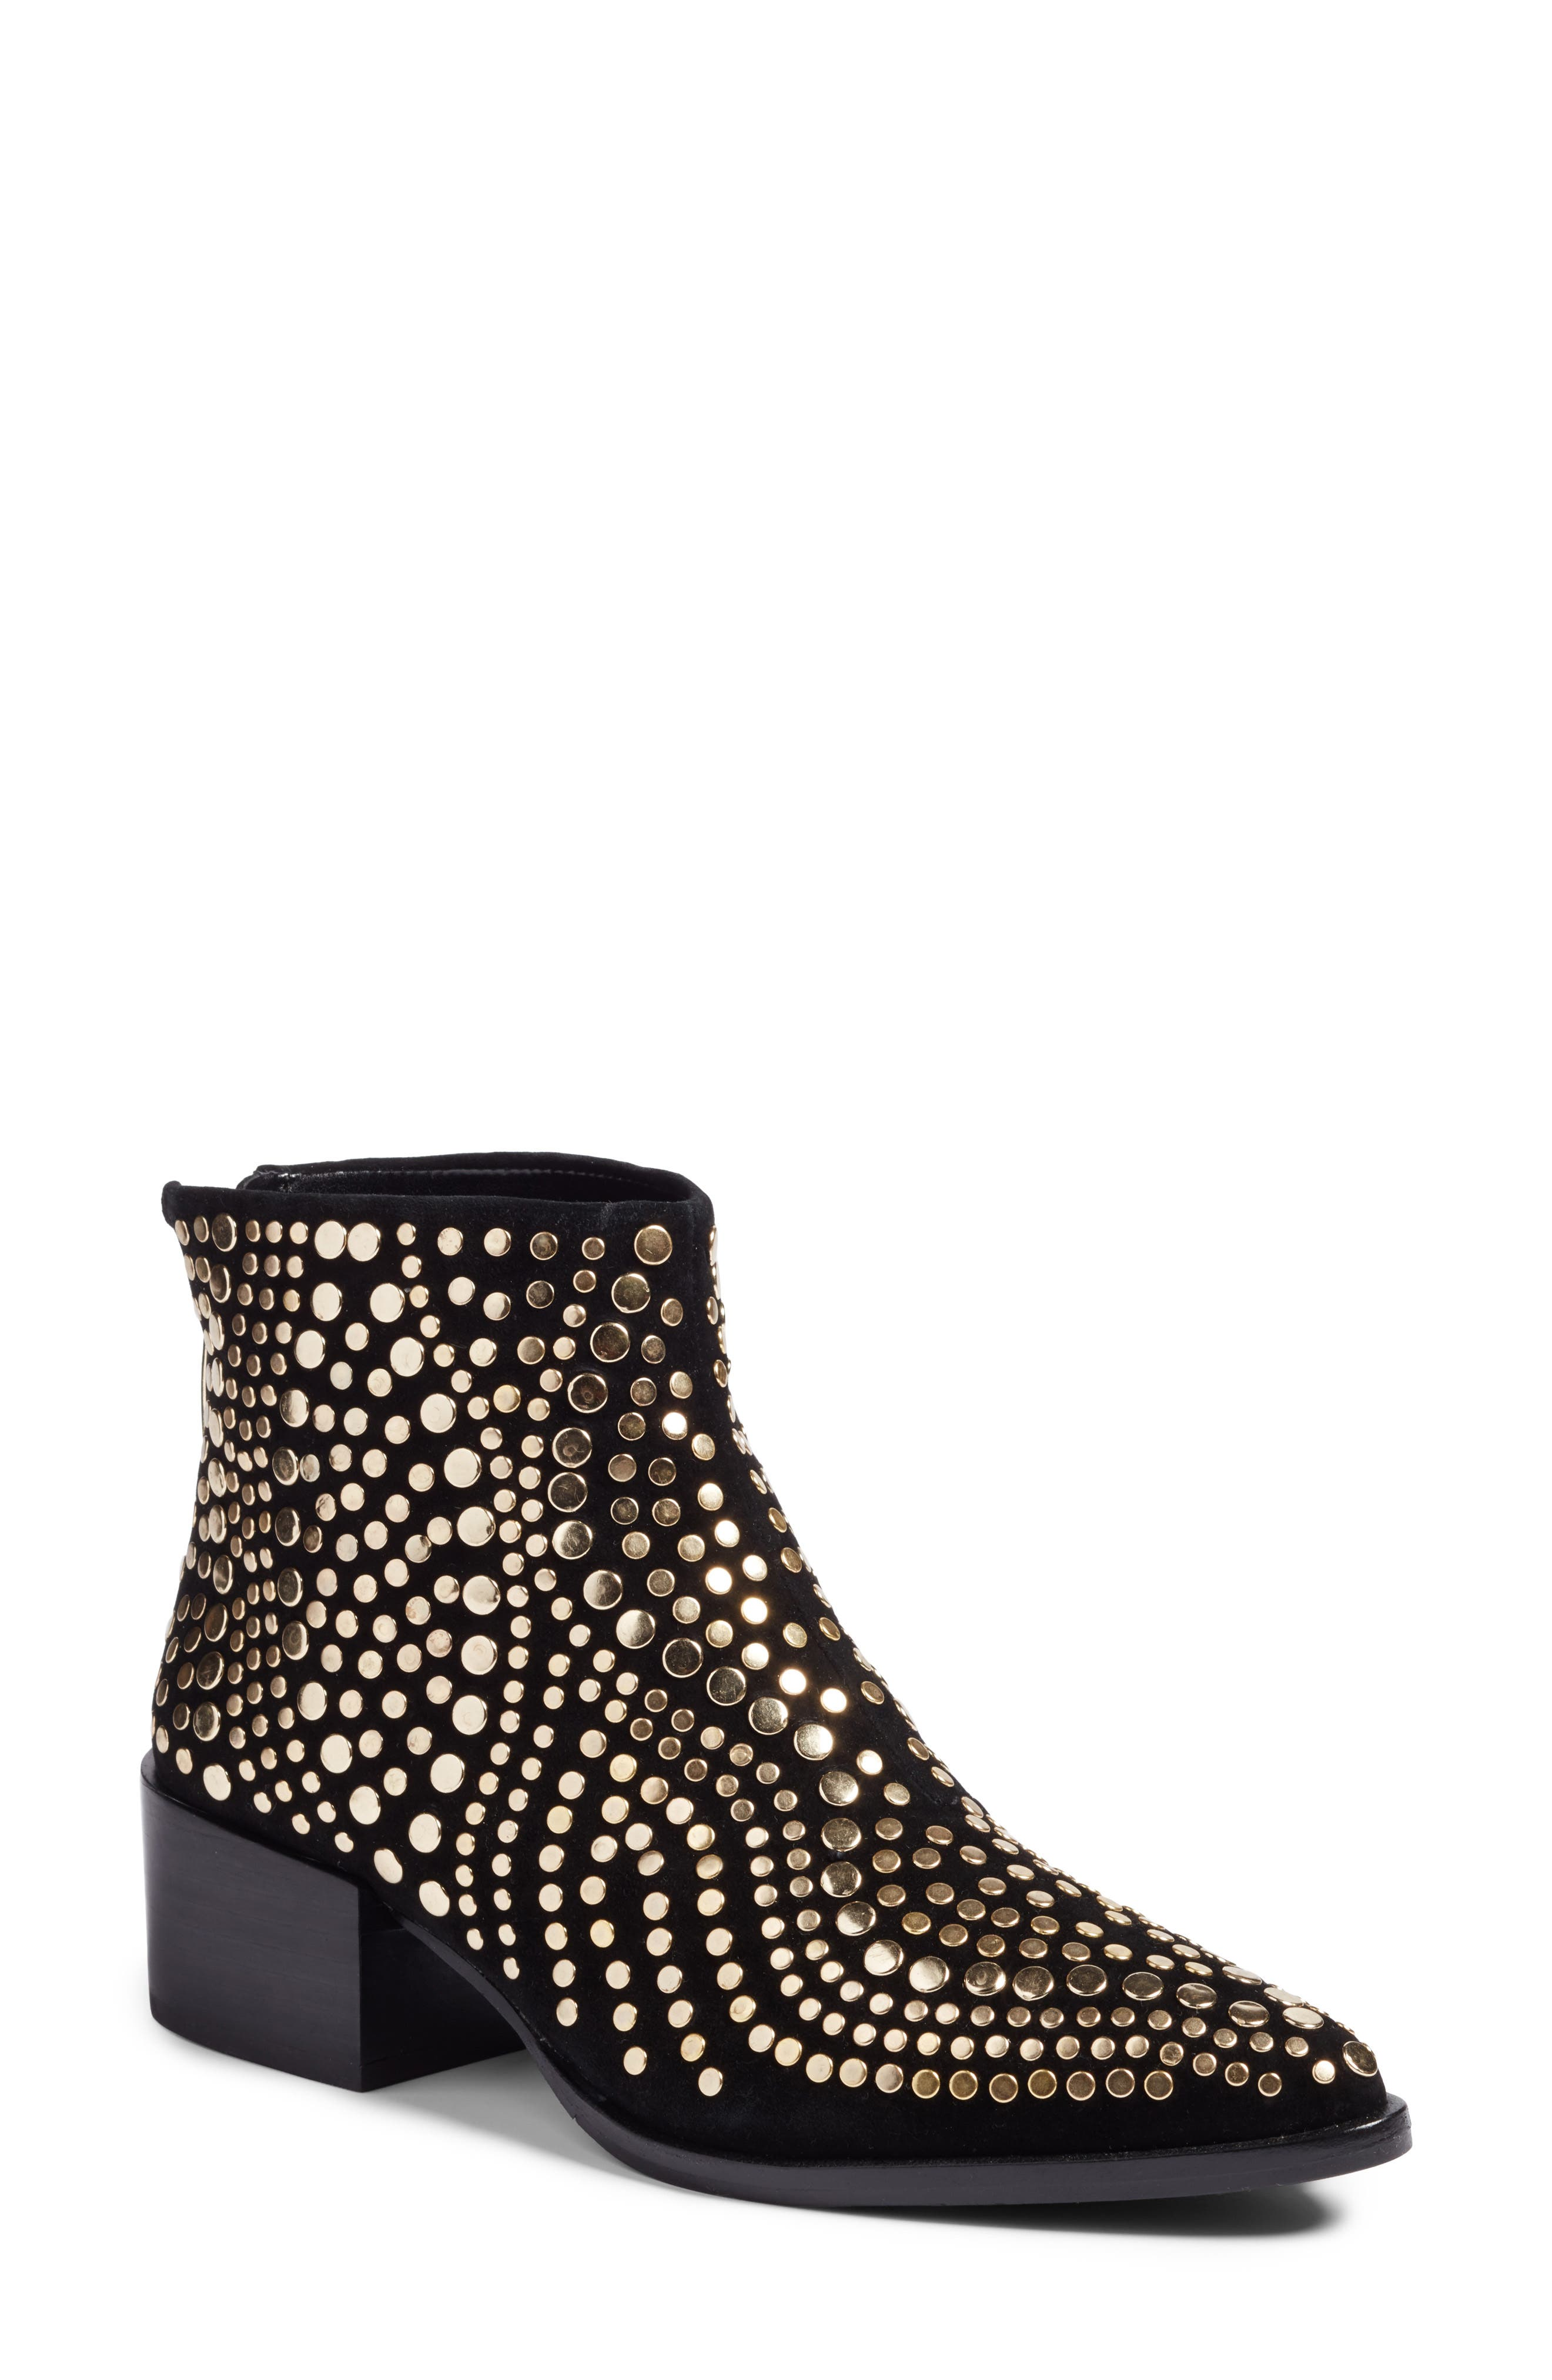 Edenny Studded Pointy Toe Bootie,                             Main thumbnail 1, color,                             002